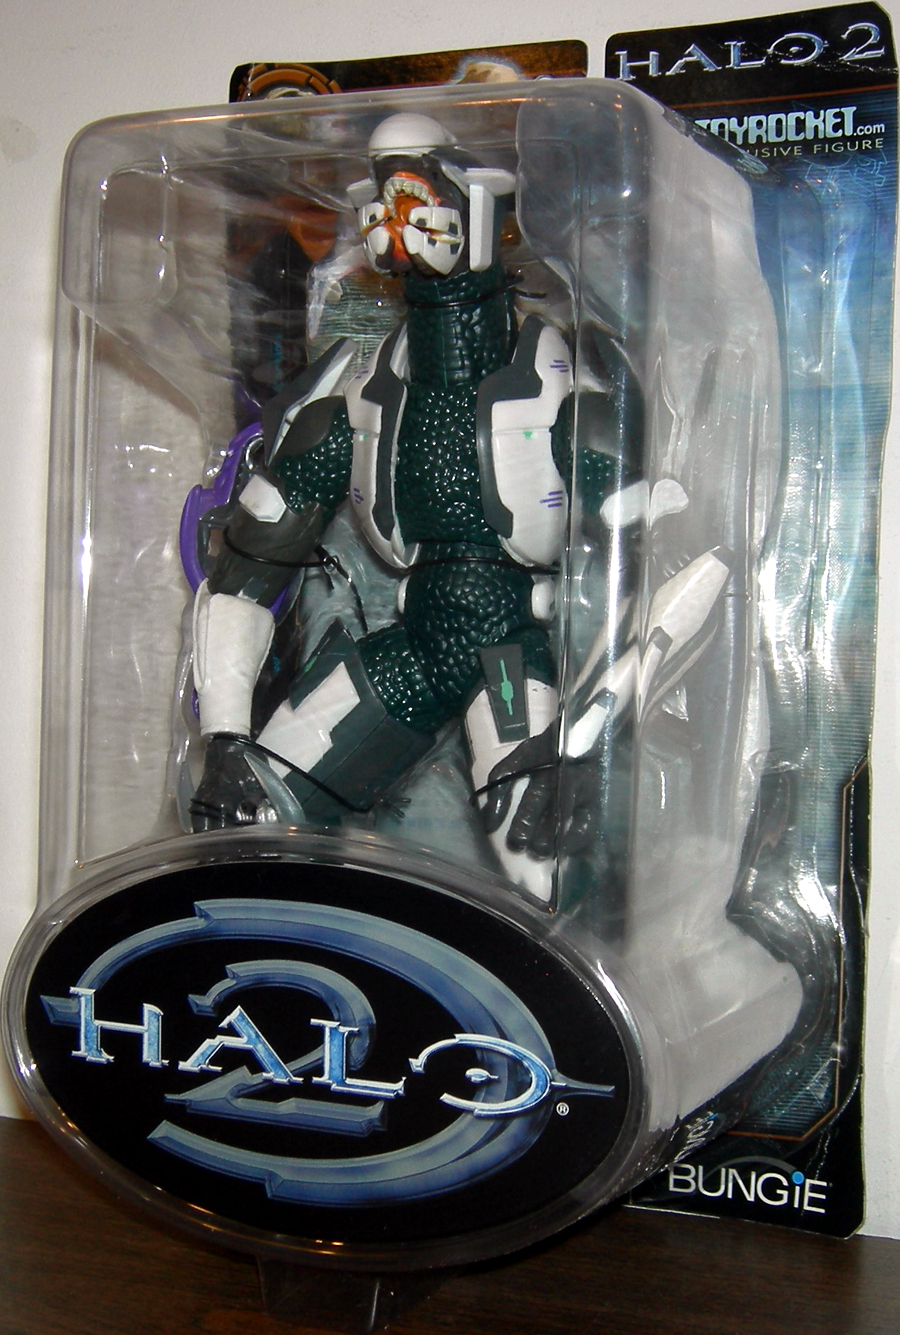 White Multiplayer Elite (Halo 2, Limited Edition)